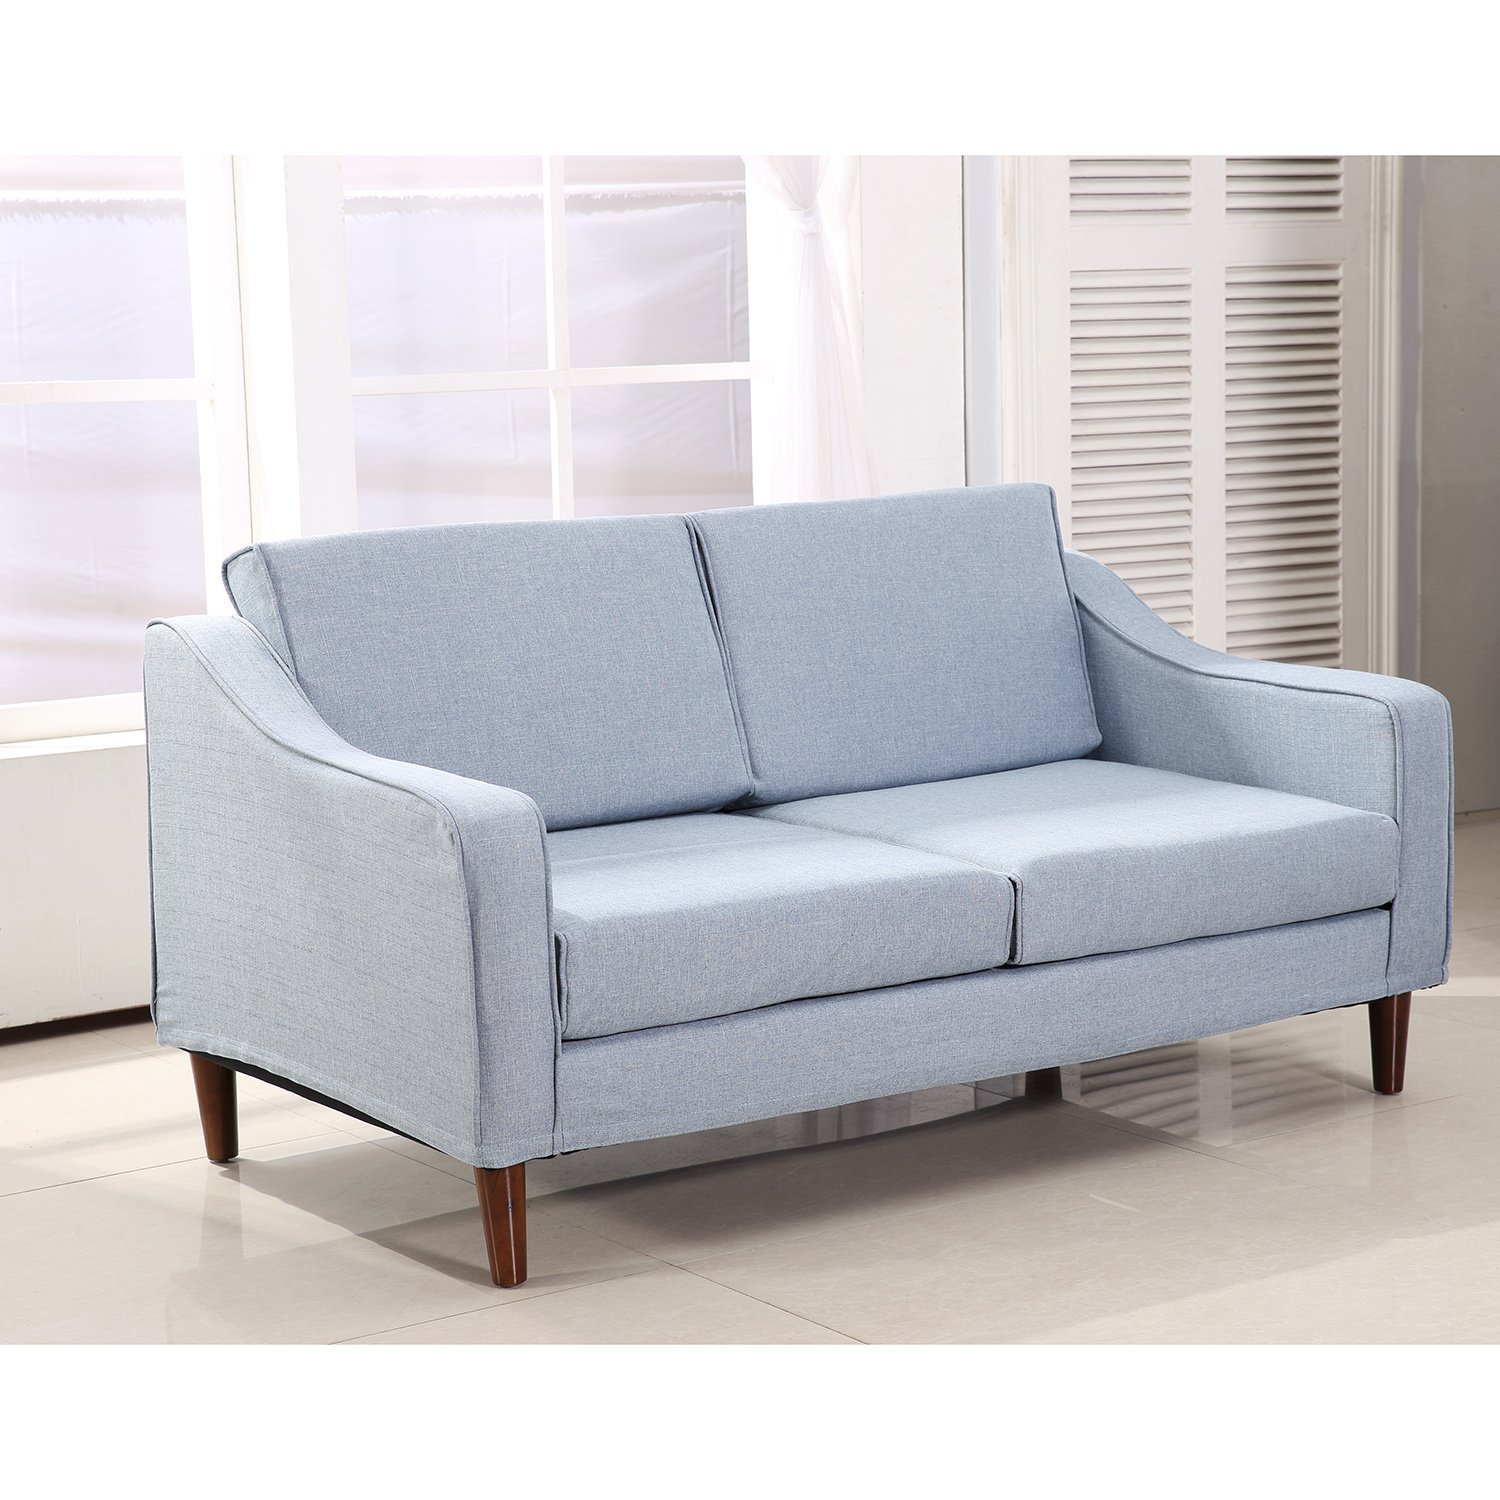 HOM Linen 2 Seater Sofa Double Seat Armchair Couch Chaise